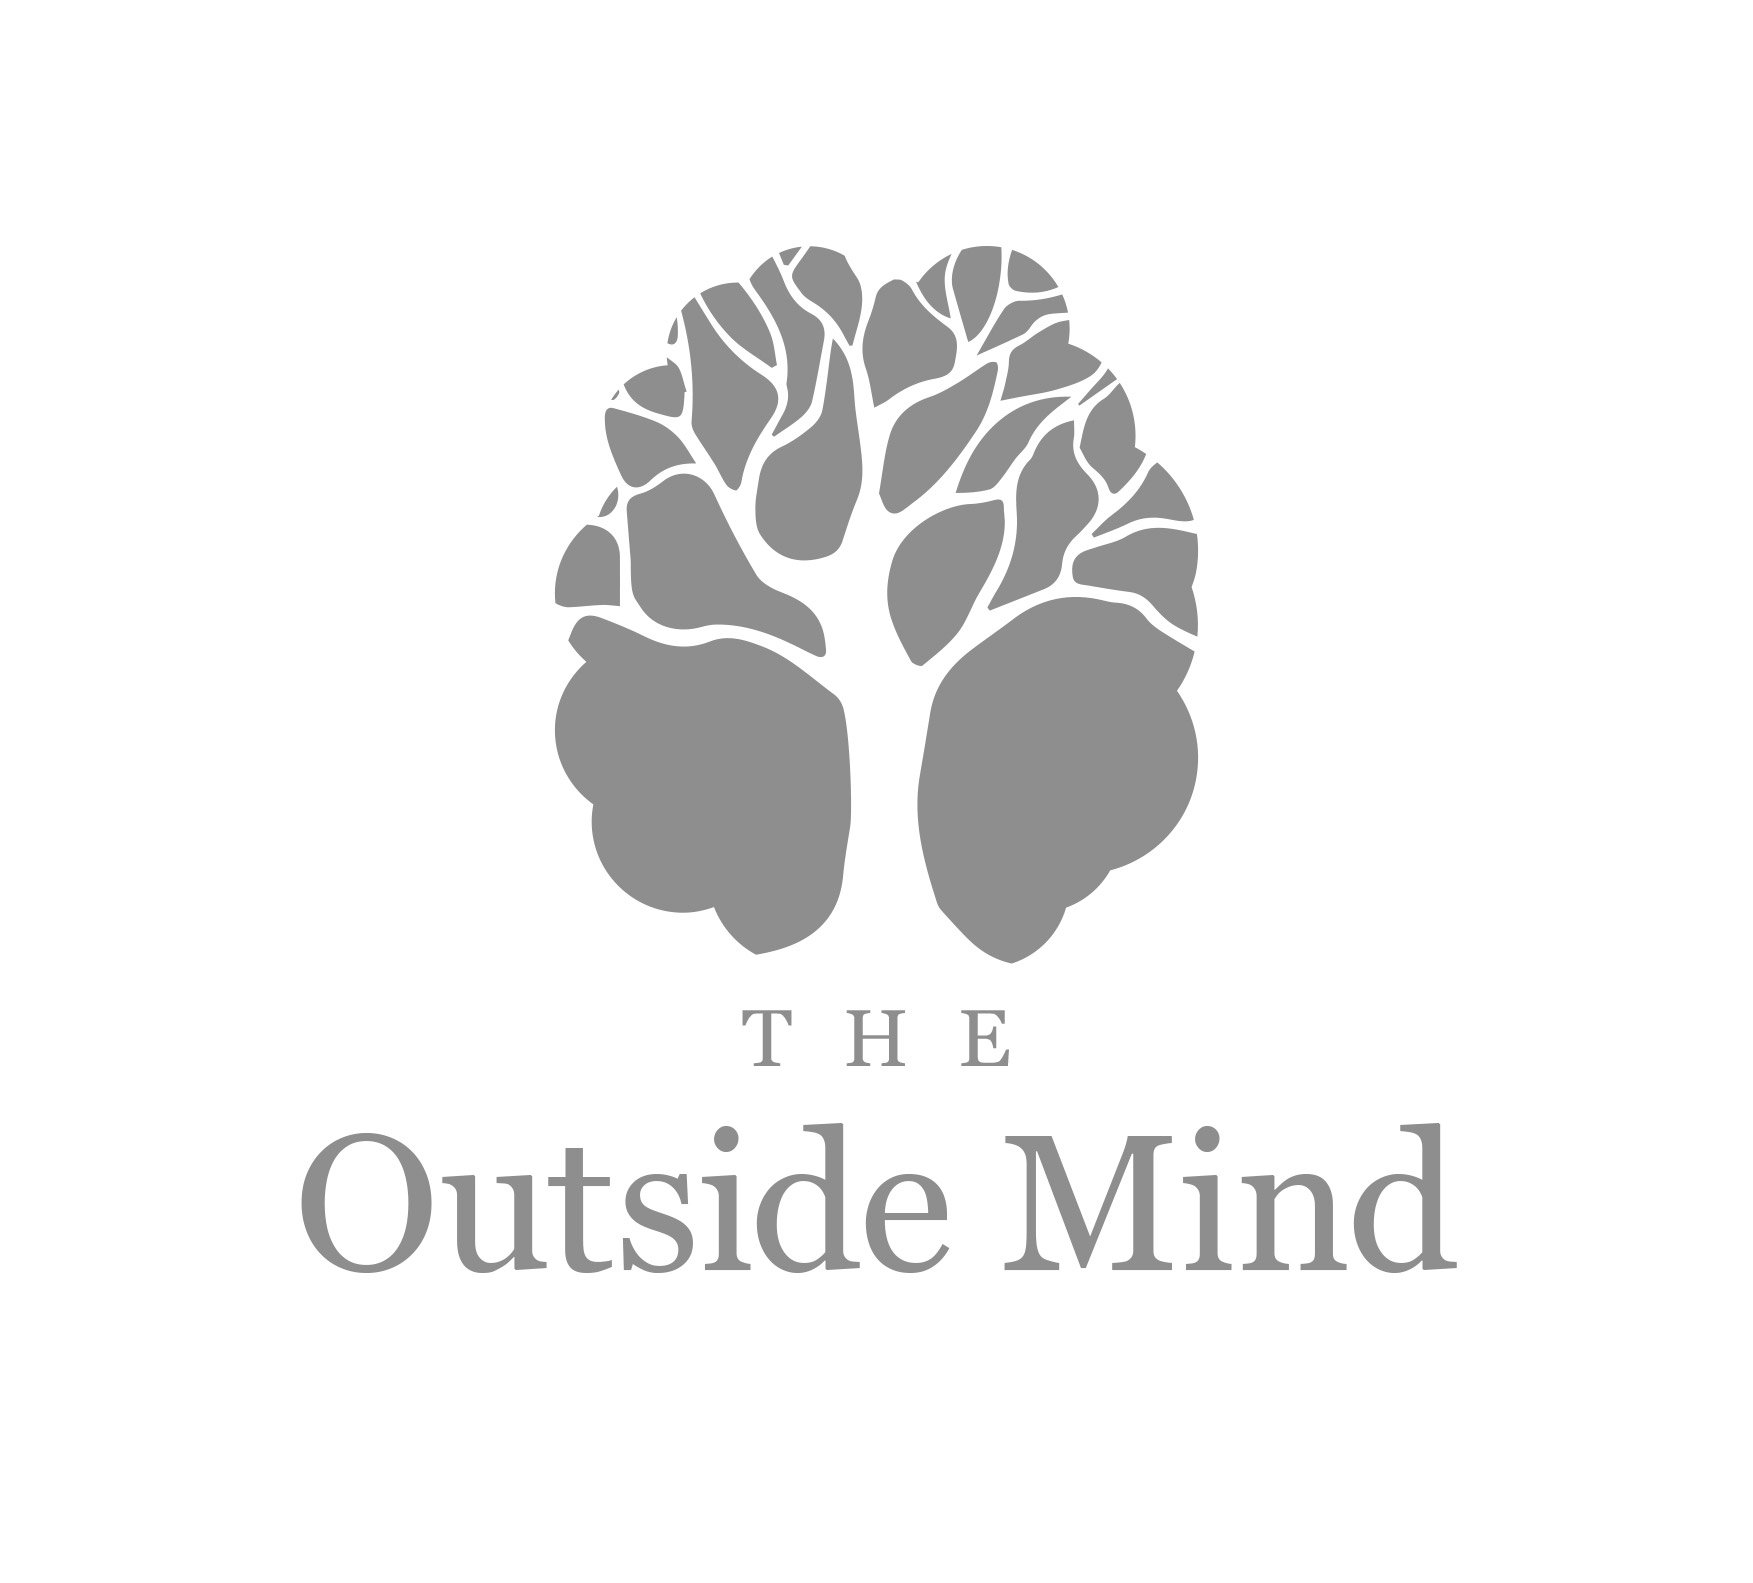 The Outside Mind Concept 2